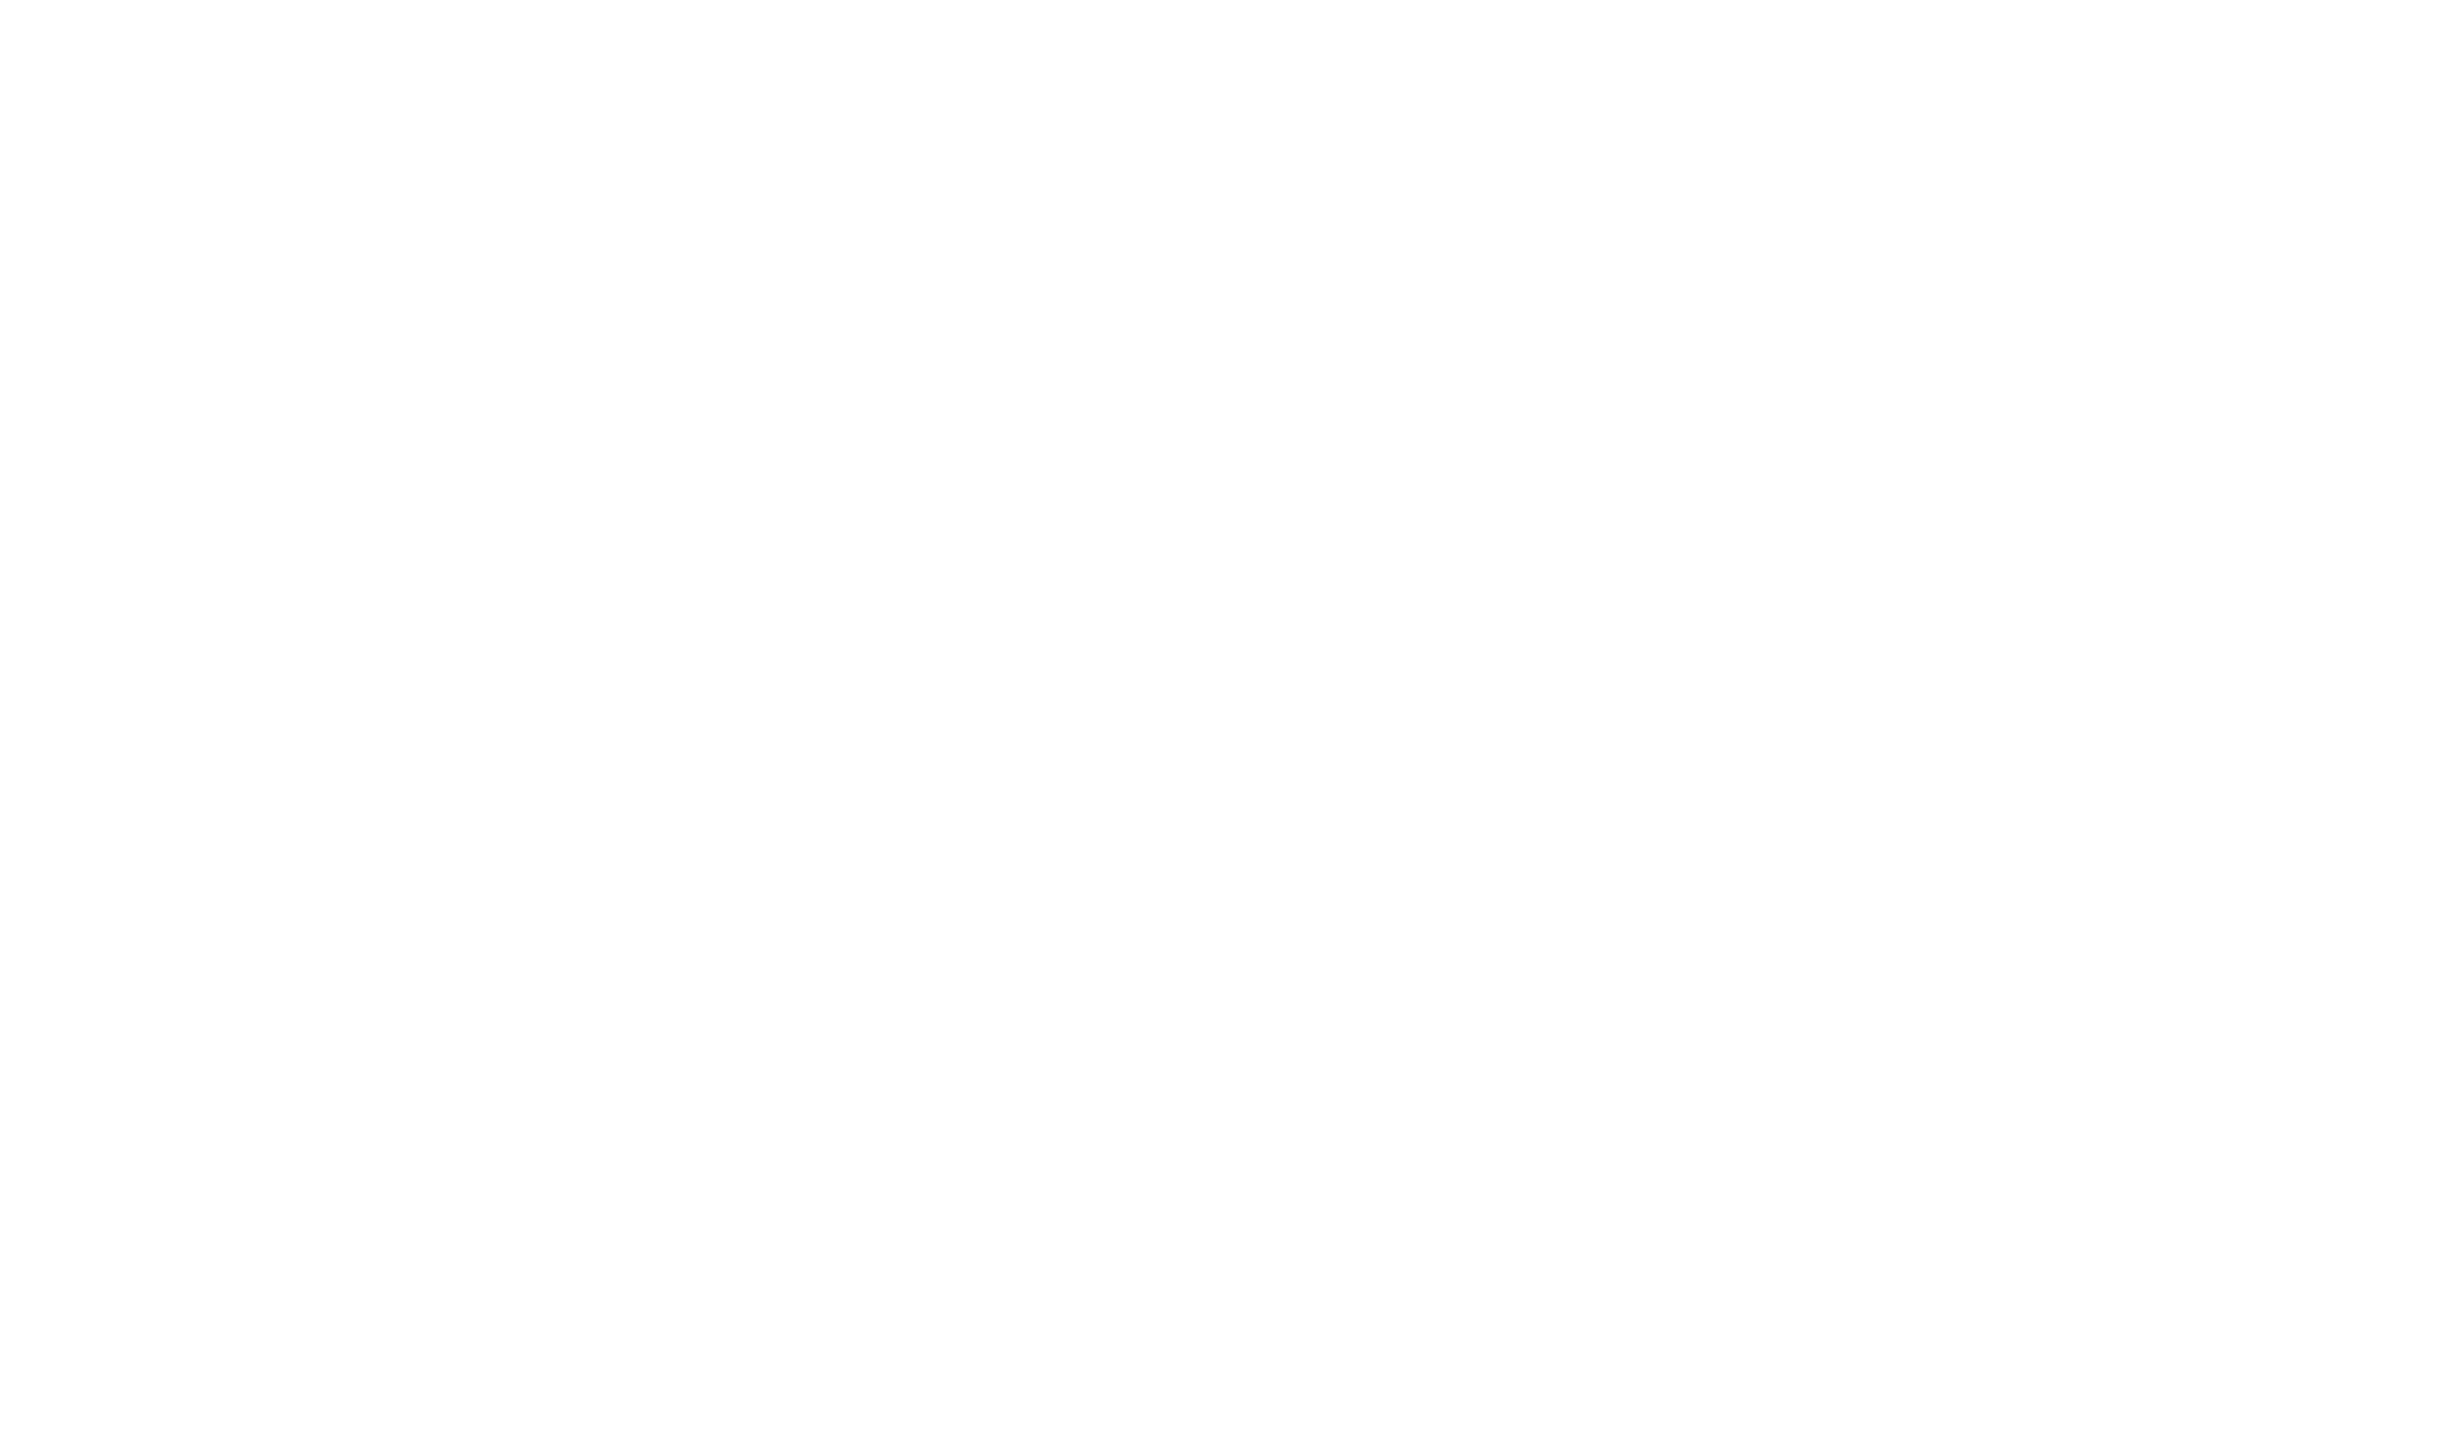 The News: Highlights of the Week Special